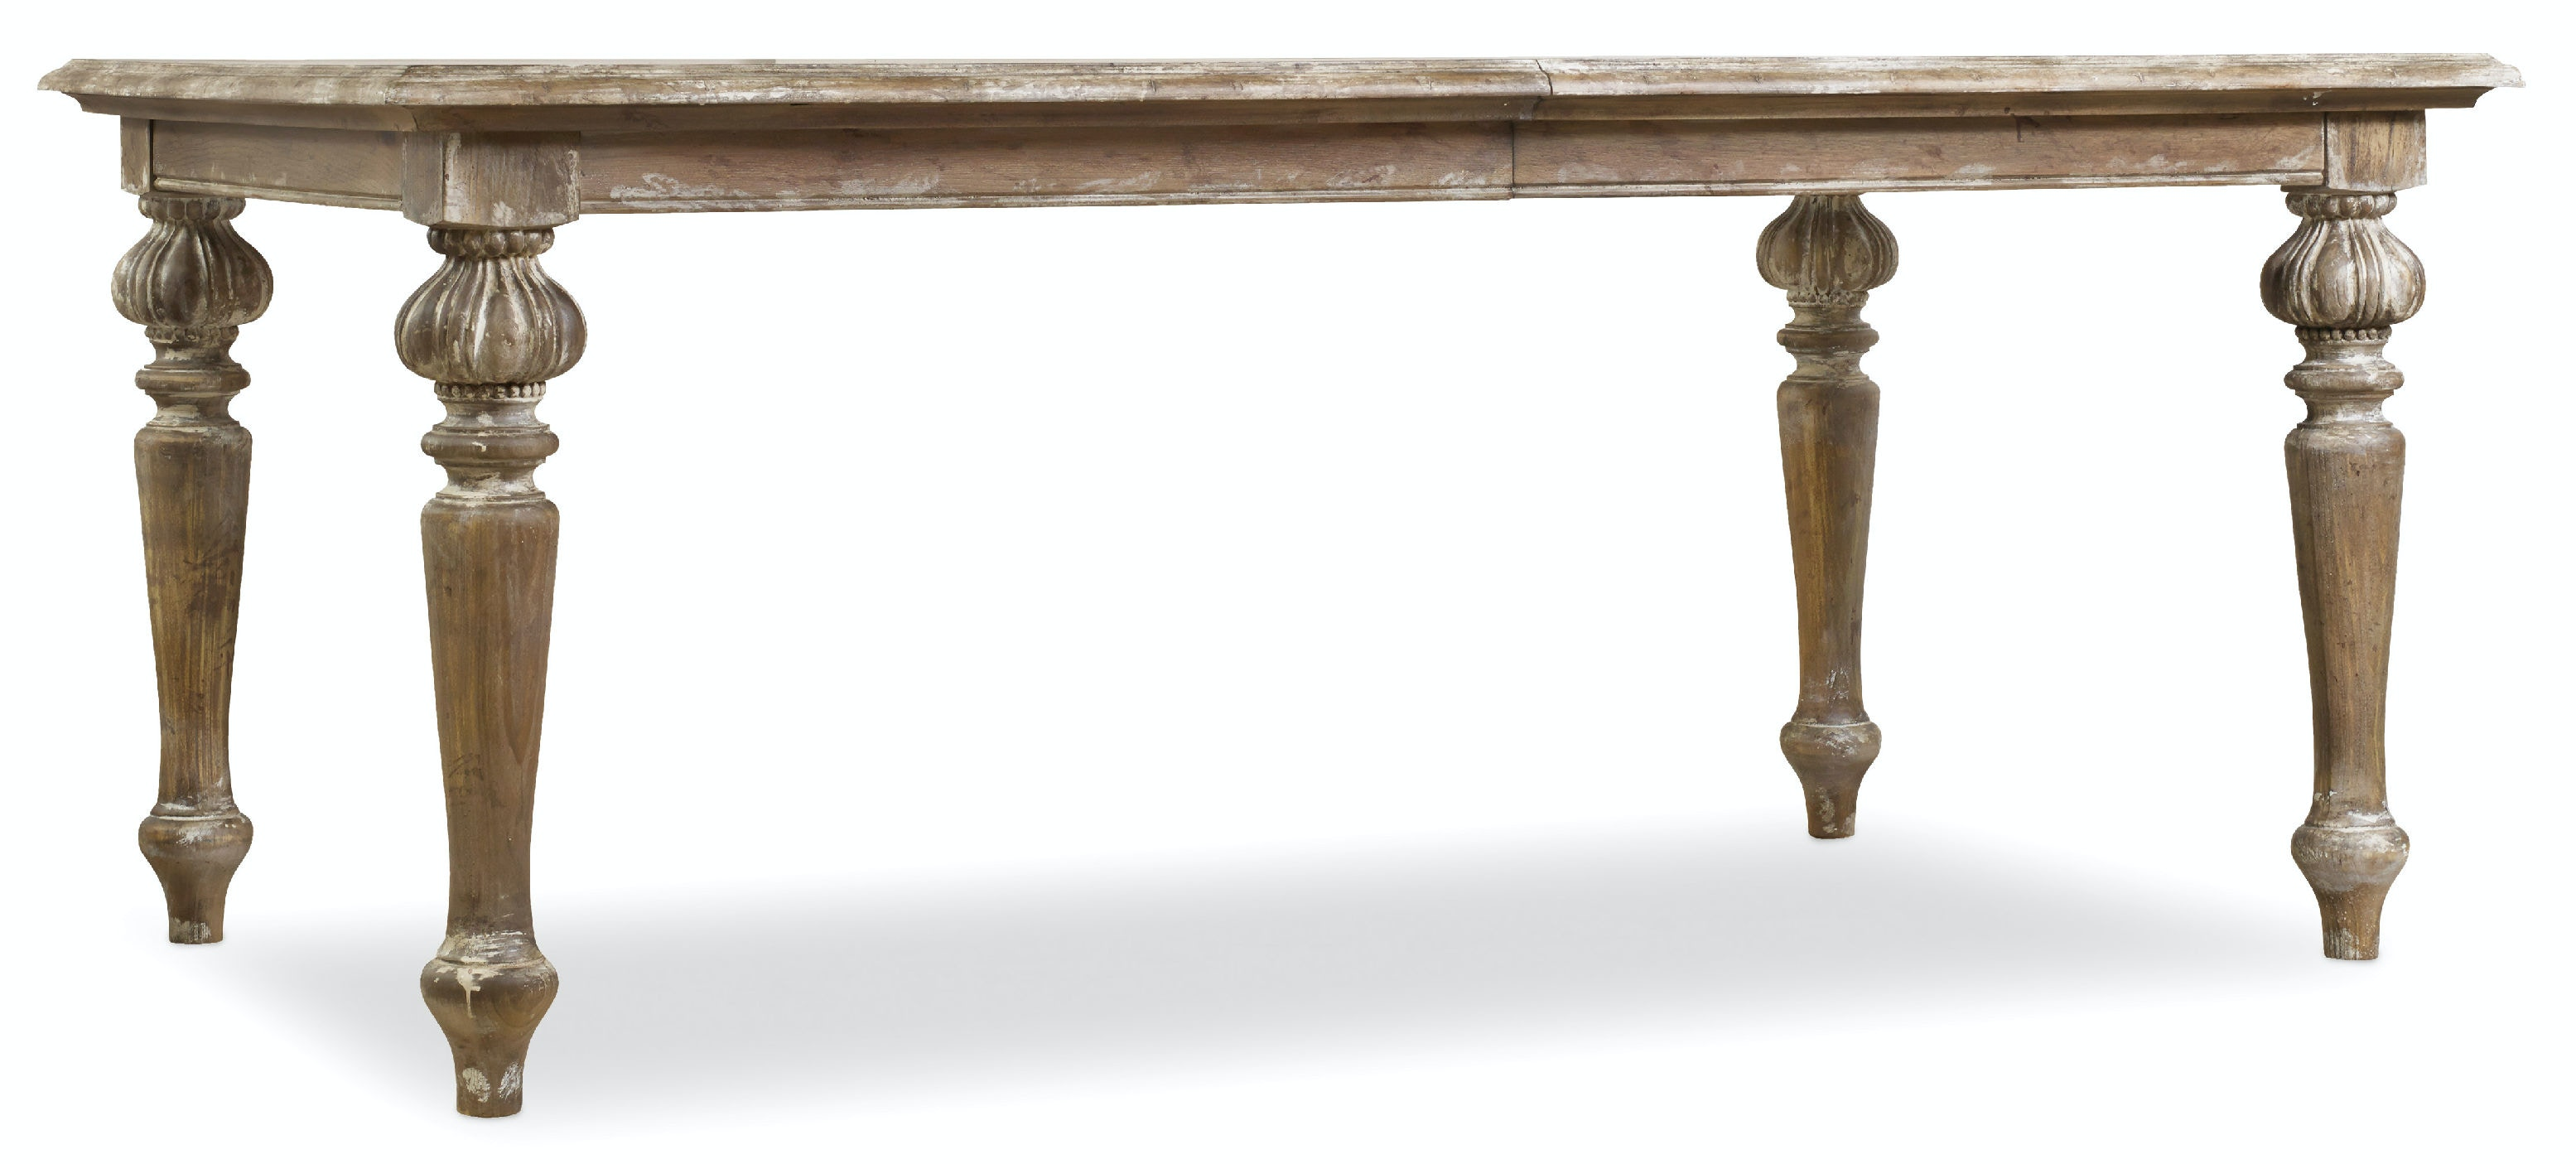 "Hooker Furniture Chatelet Rectangle Leg Dining Table with Two 18"" Leaves 5300-75200"